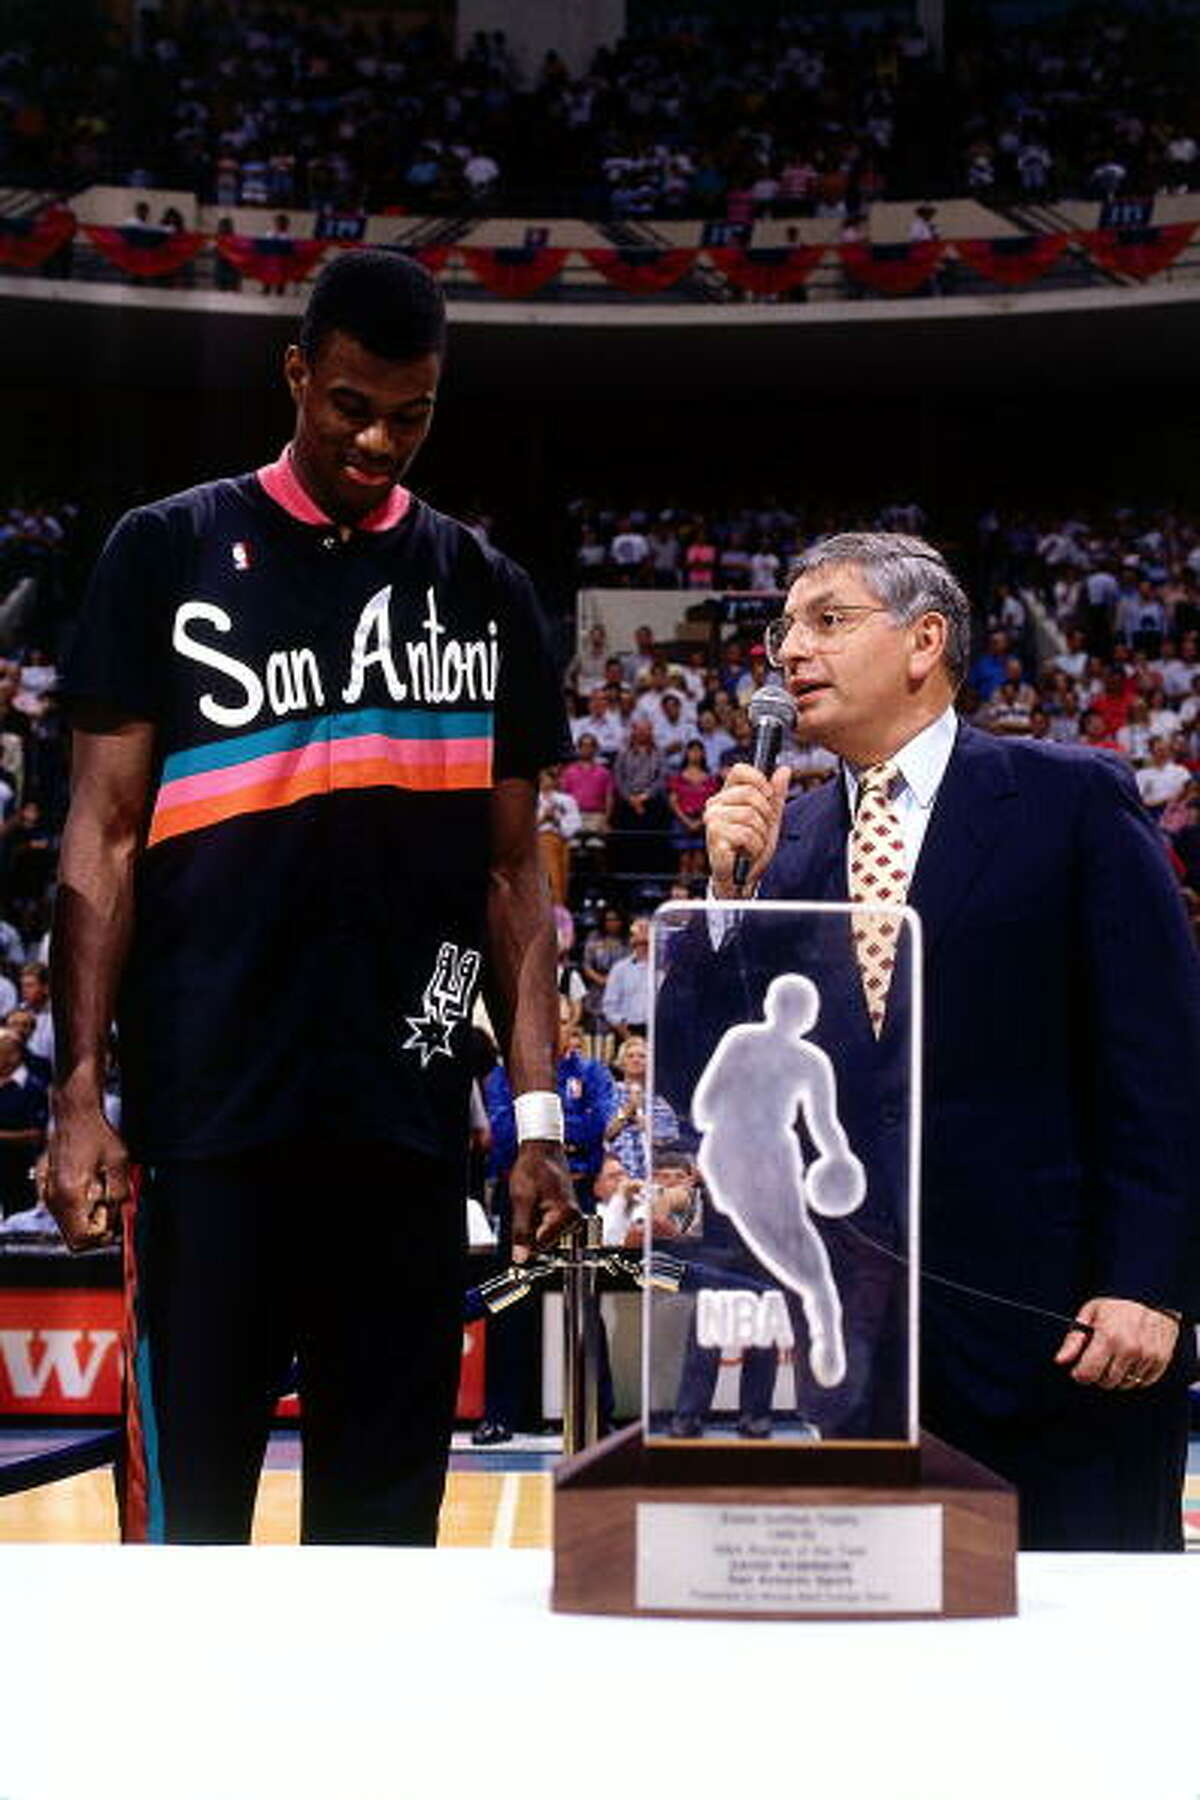 2. When he rocked his rookie year We had our first taste of the greatness that would roll on for years in 1989, Robinson's rookie year. He averaged 24.3 points and 12 rebounds a game, earning him the Rookie of the Year title.